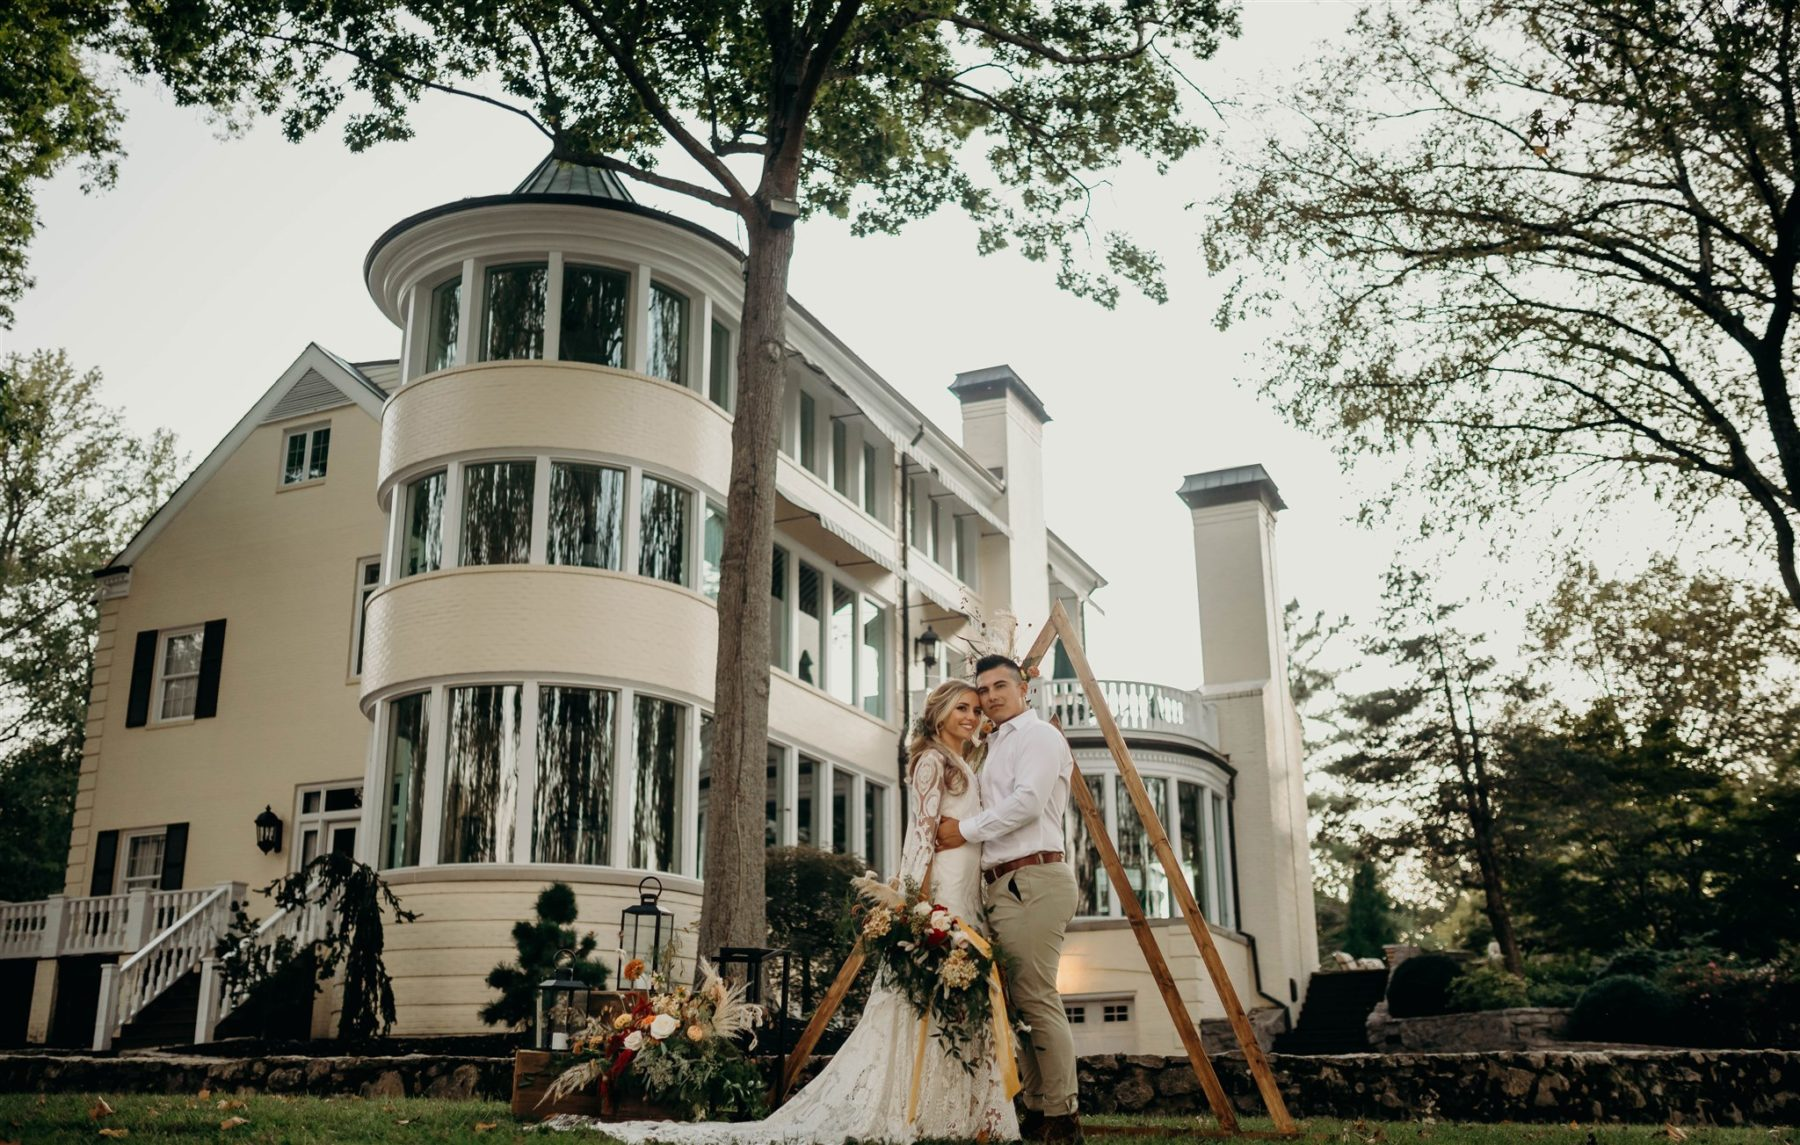 Winter Boho Wedding Styled Shoot featured on Nashville Bride Guide!